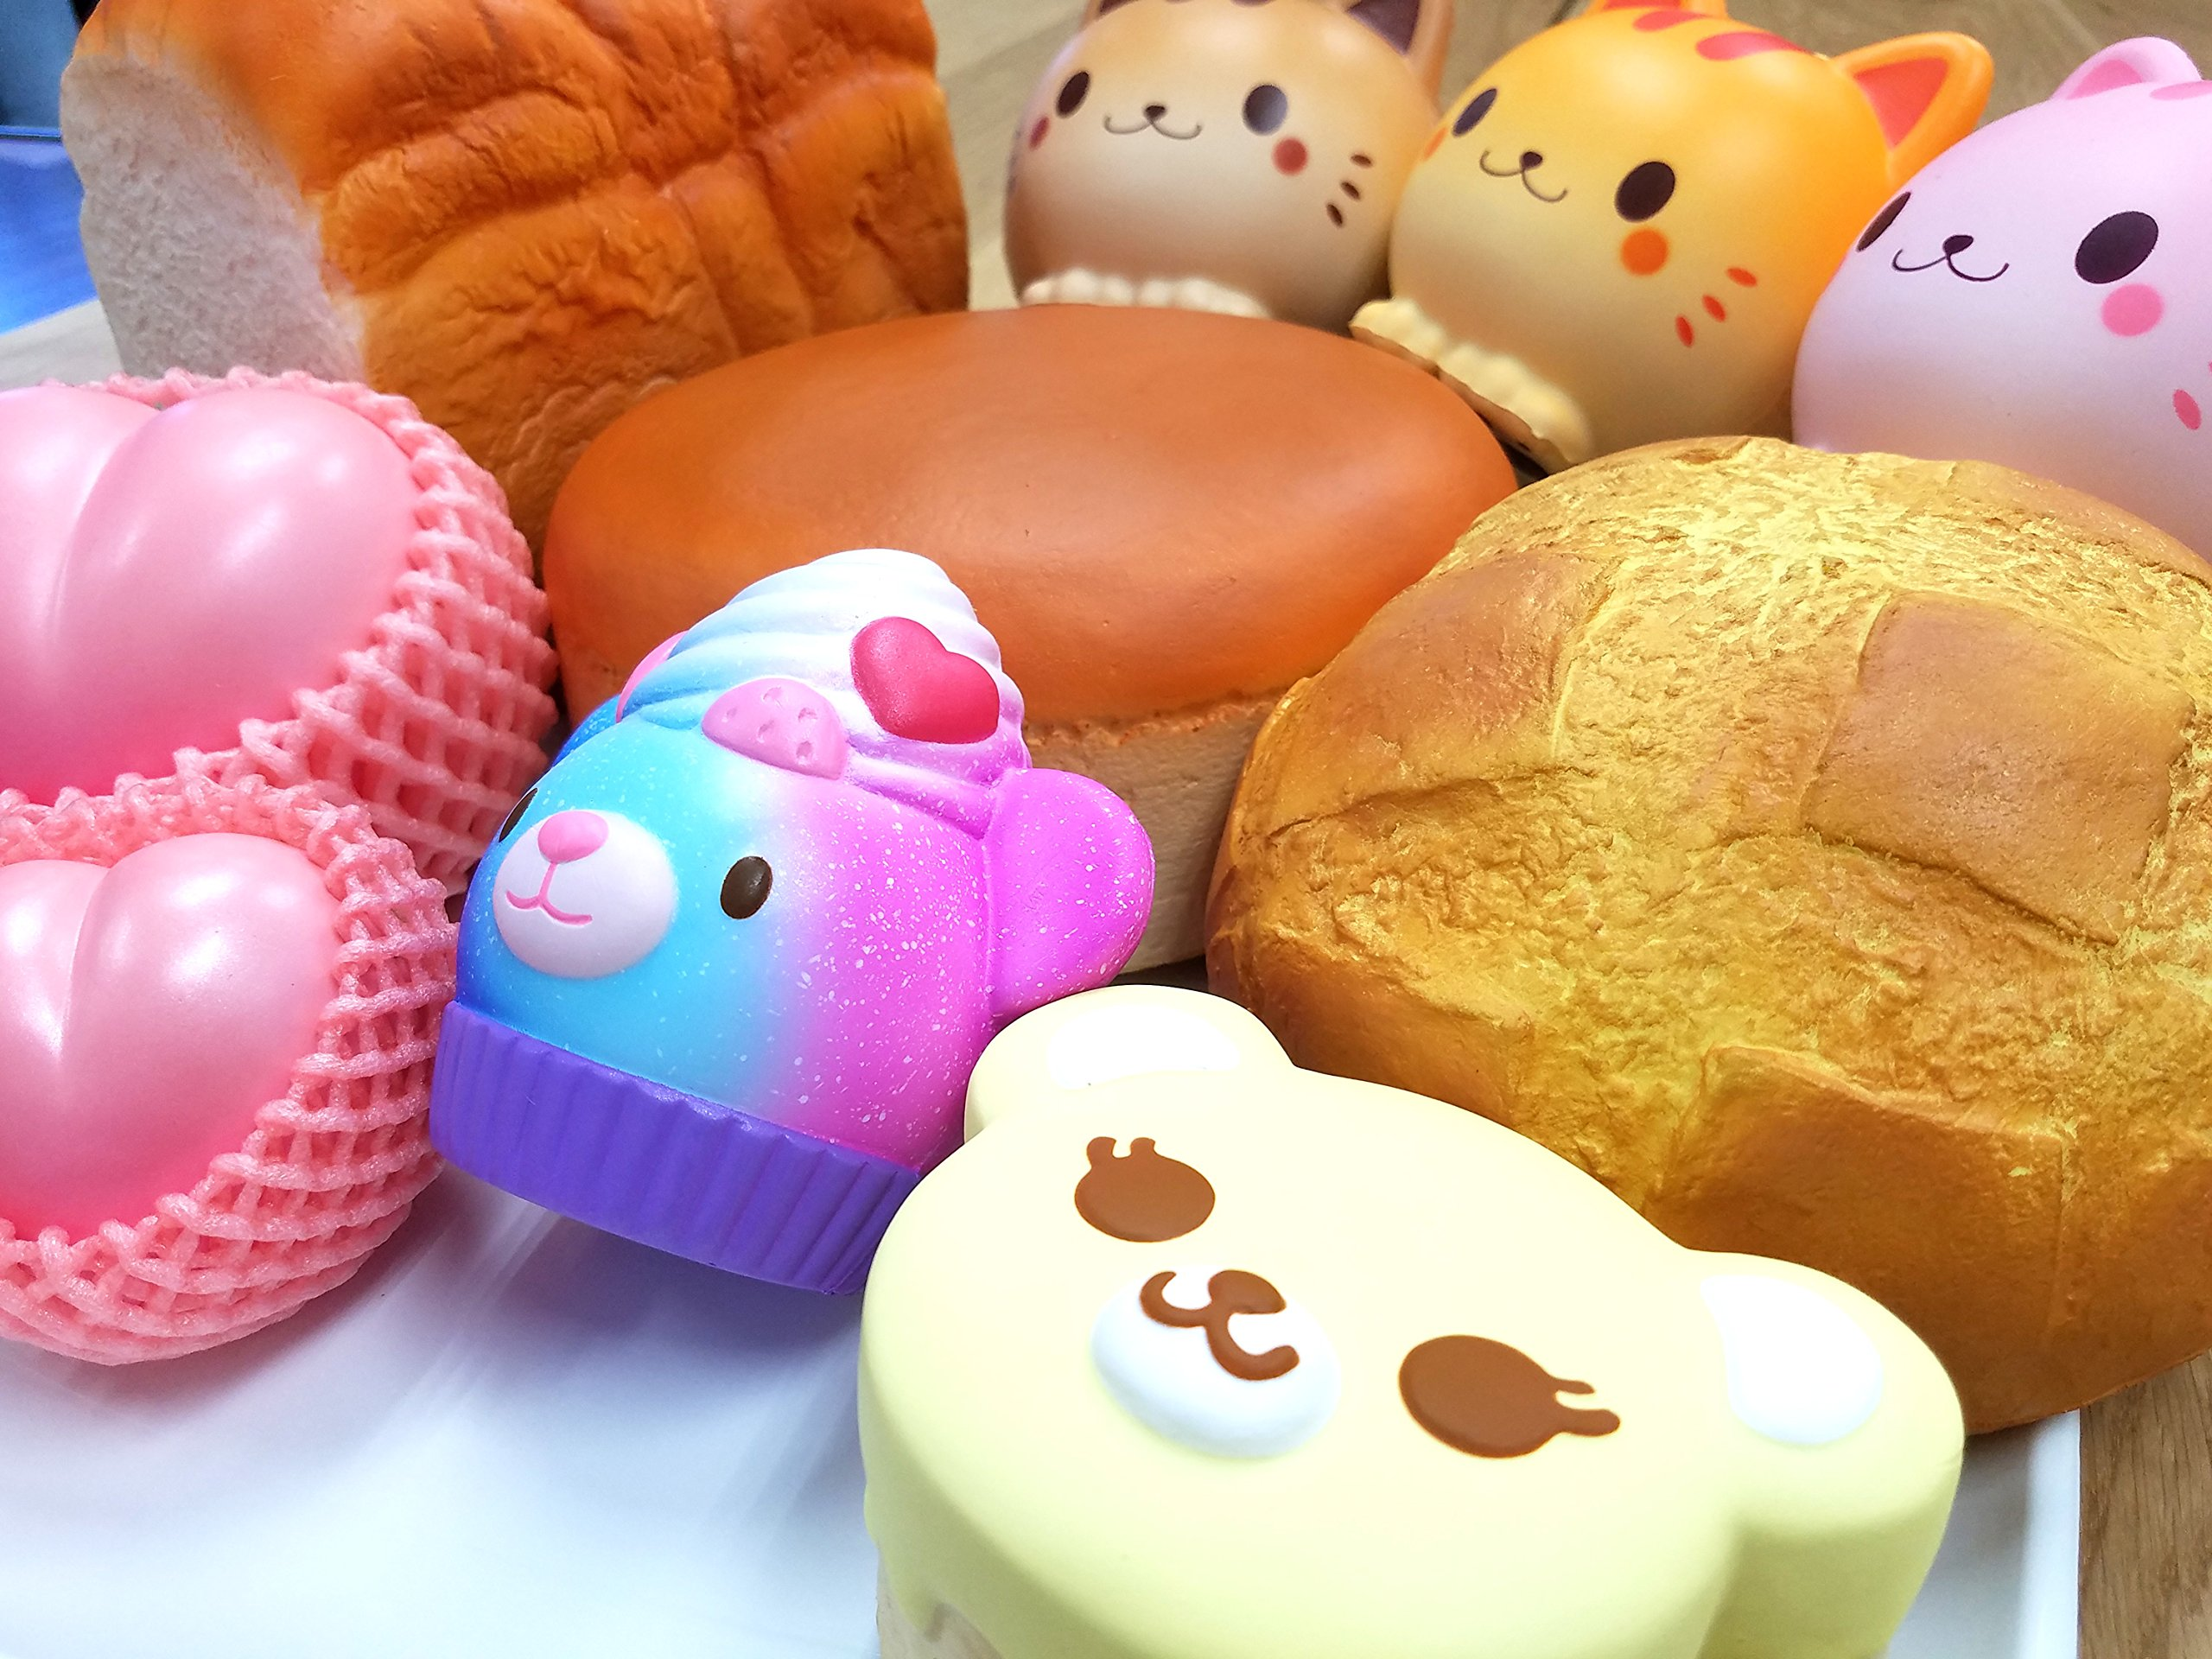 ibloom ''Slow Rising [Squishy Collection] Pain du Matin Chocolate [Scented] Jumbo Bread Loaf Squishy Kids Cute Adorable Doll Stress Relief Toy Decorative Props